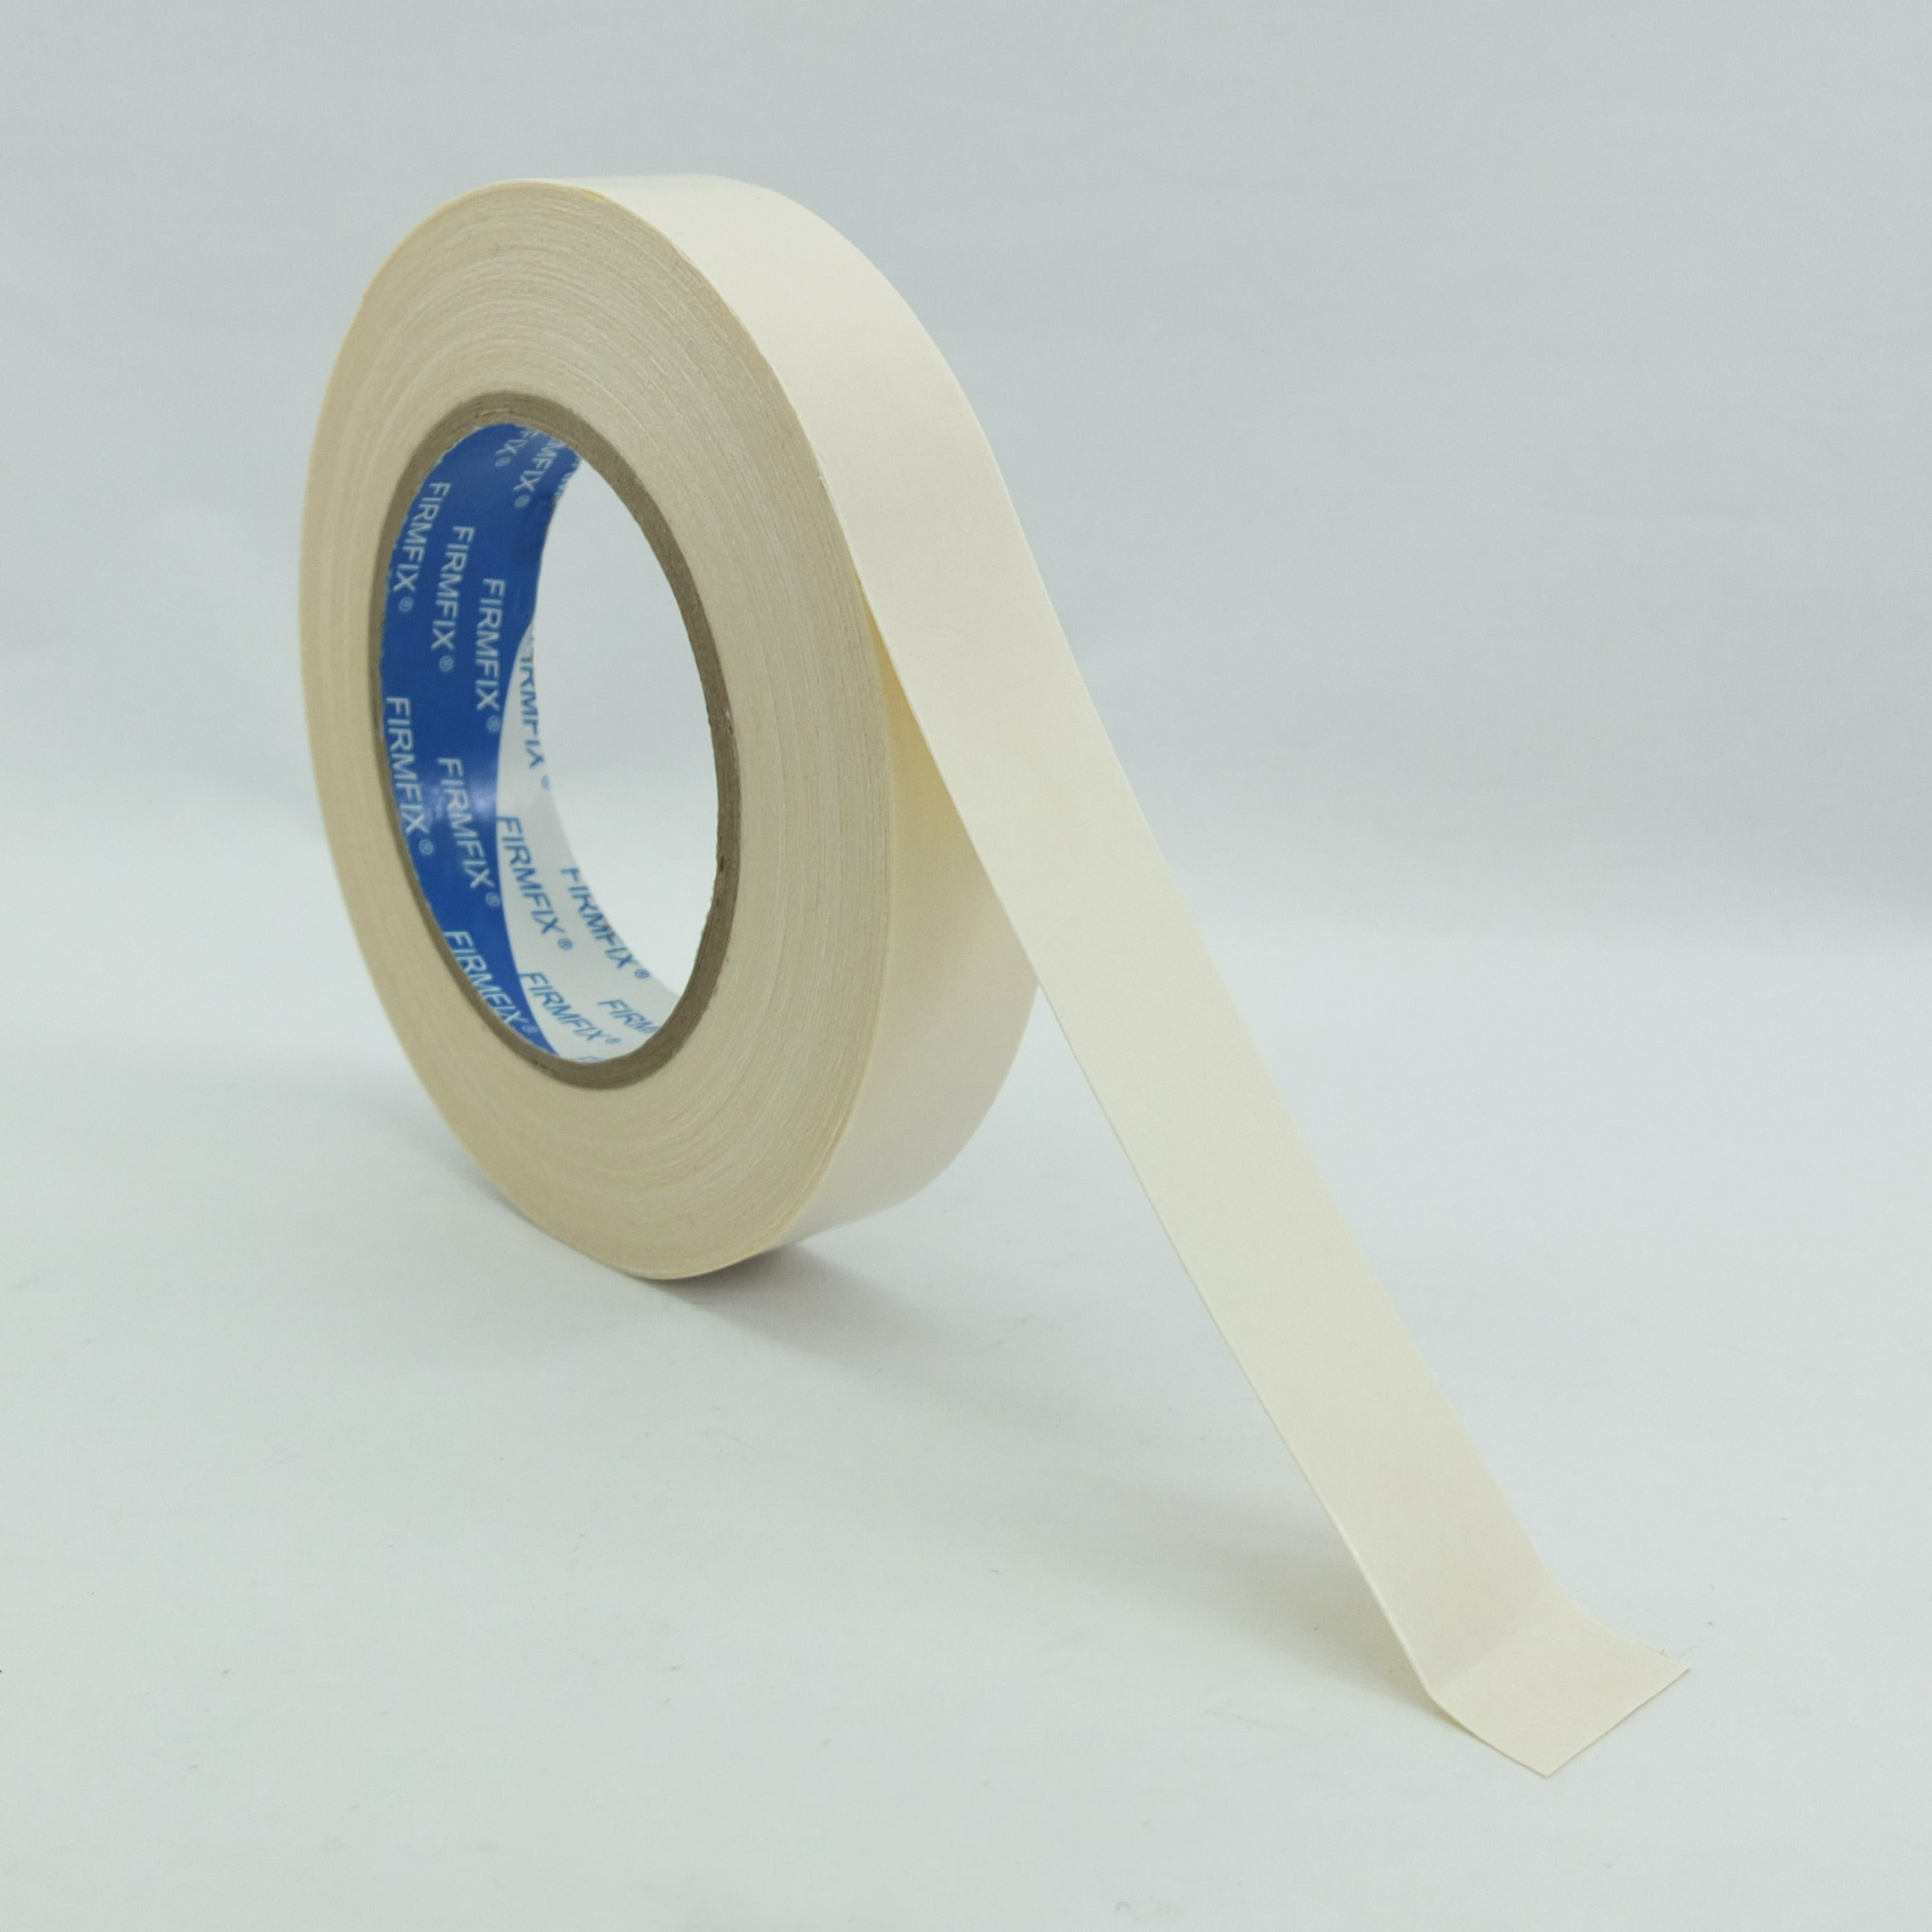 FIRMFIX 1460 Carpet Tape